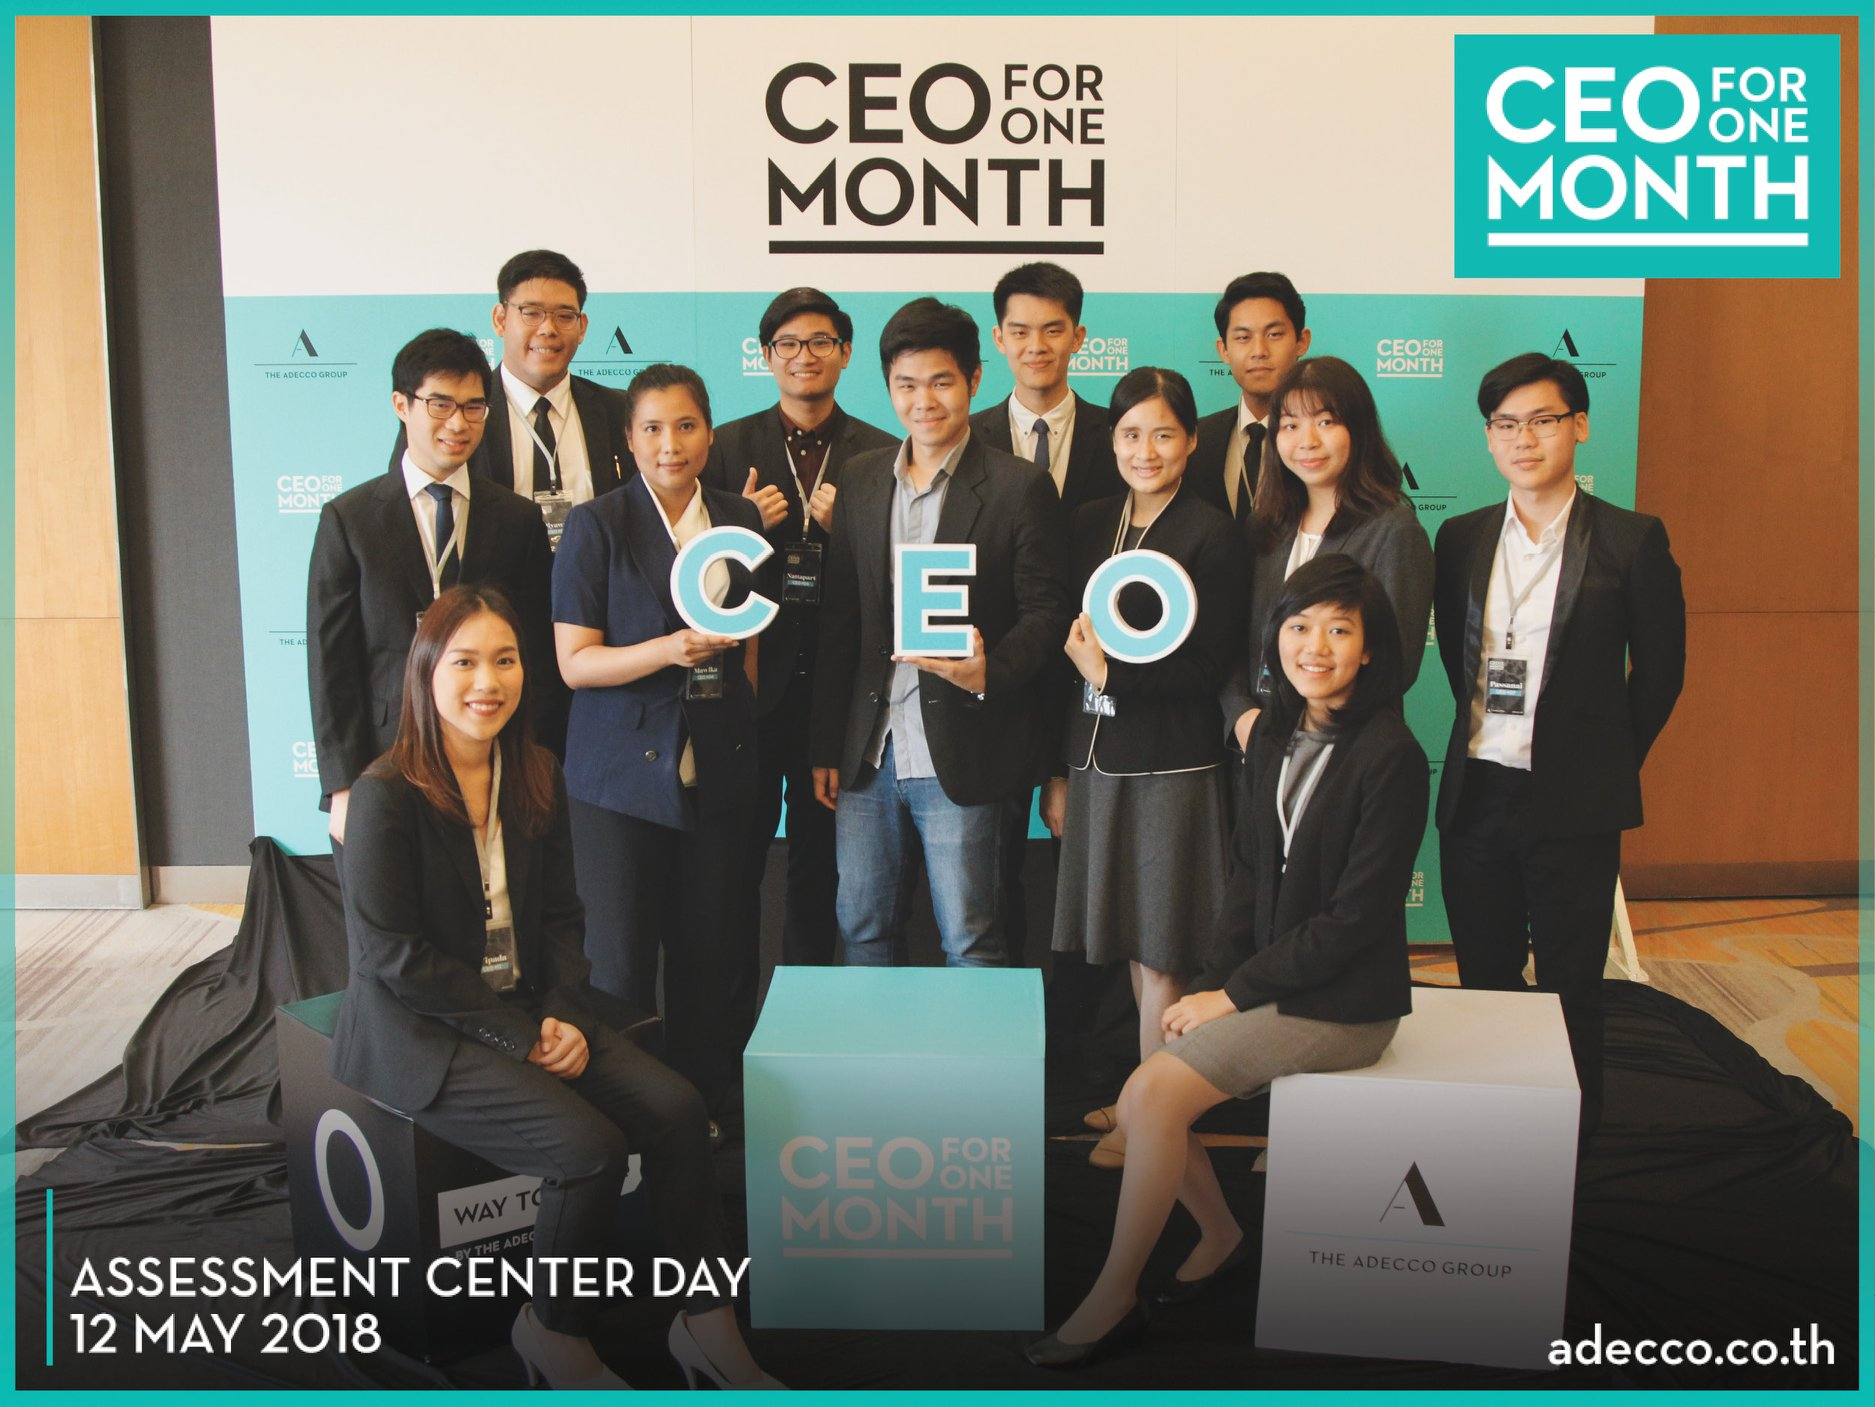 CEO for ONE Month 2018 ประเทศไทย